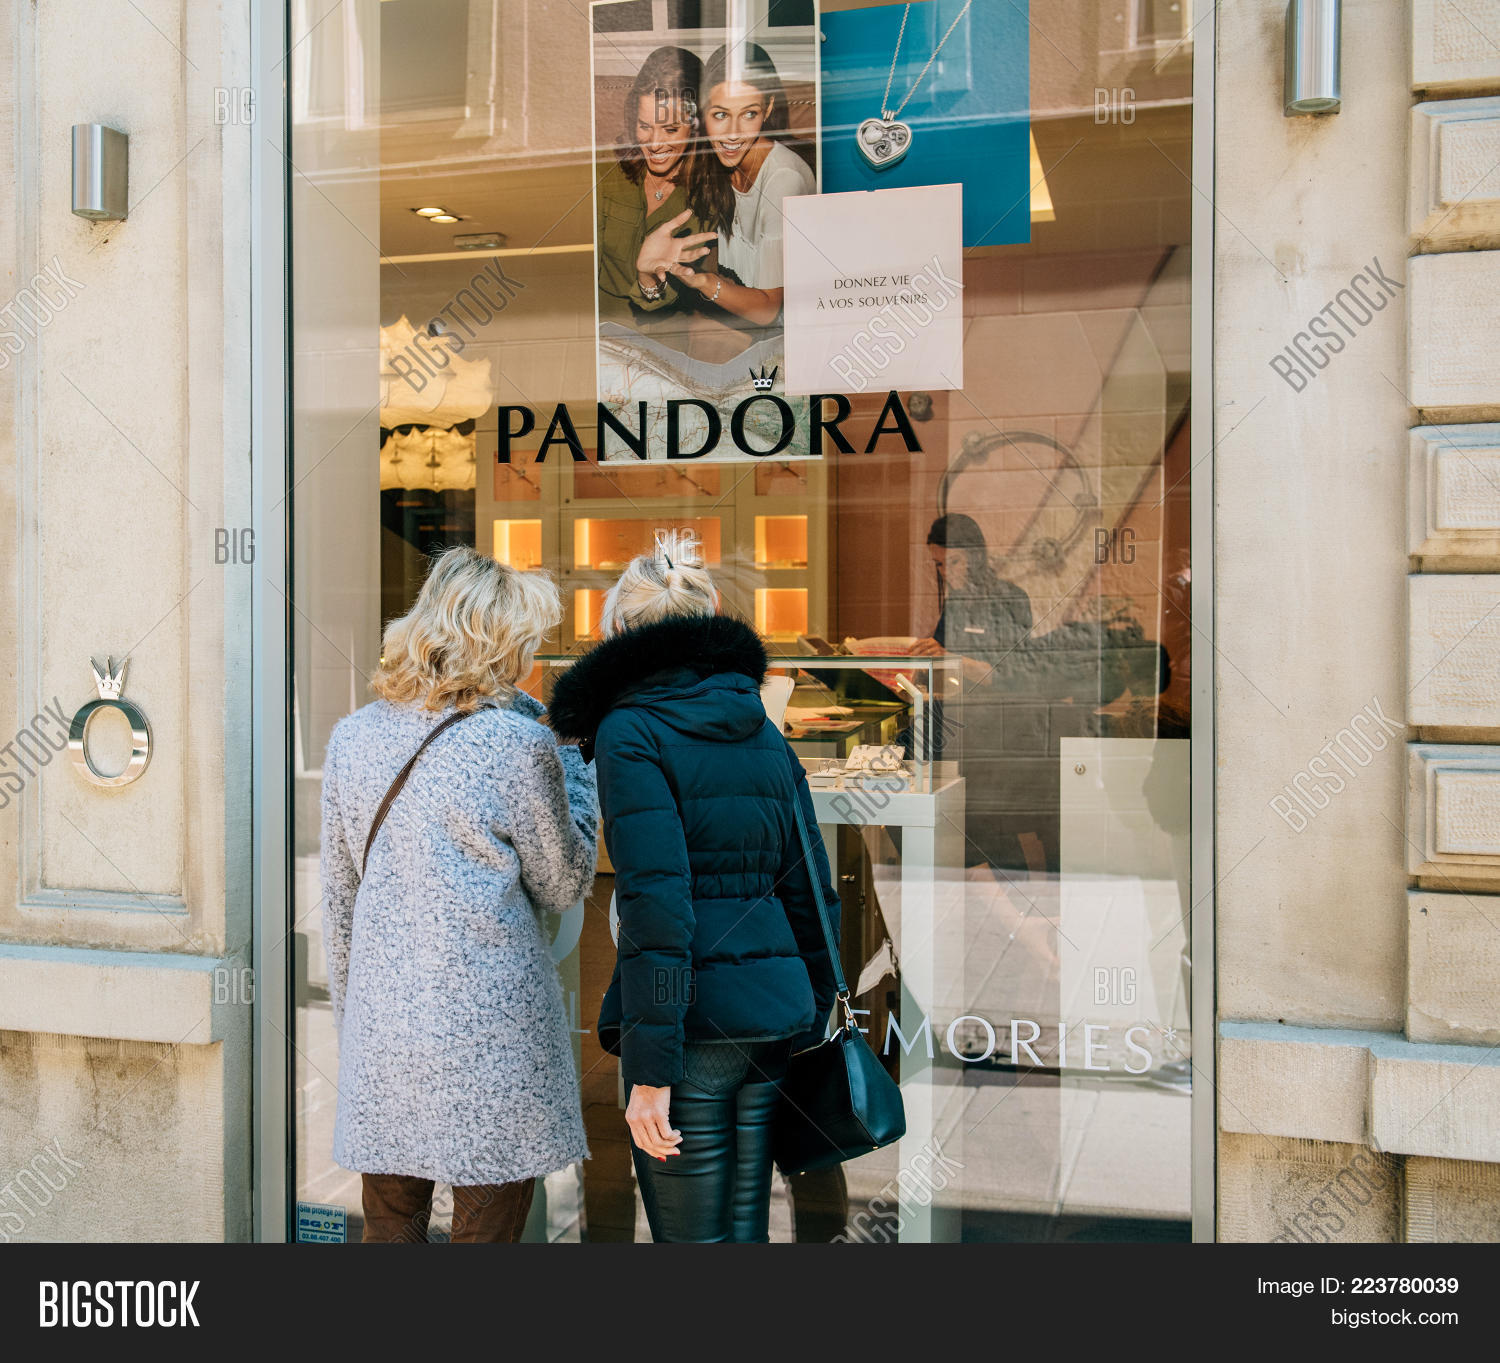 boutique pandora paris france